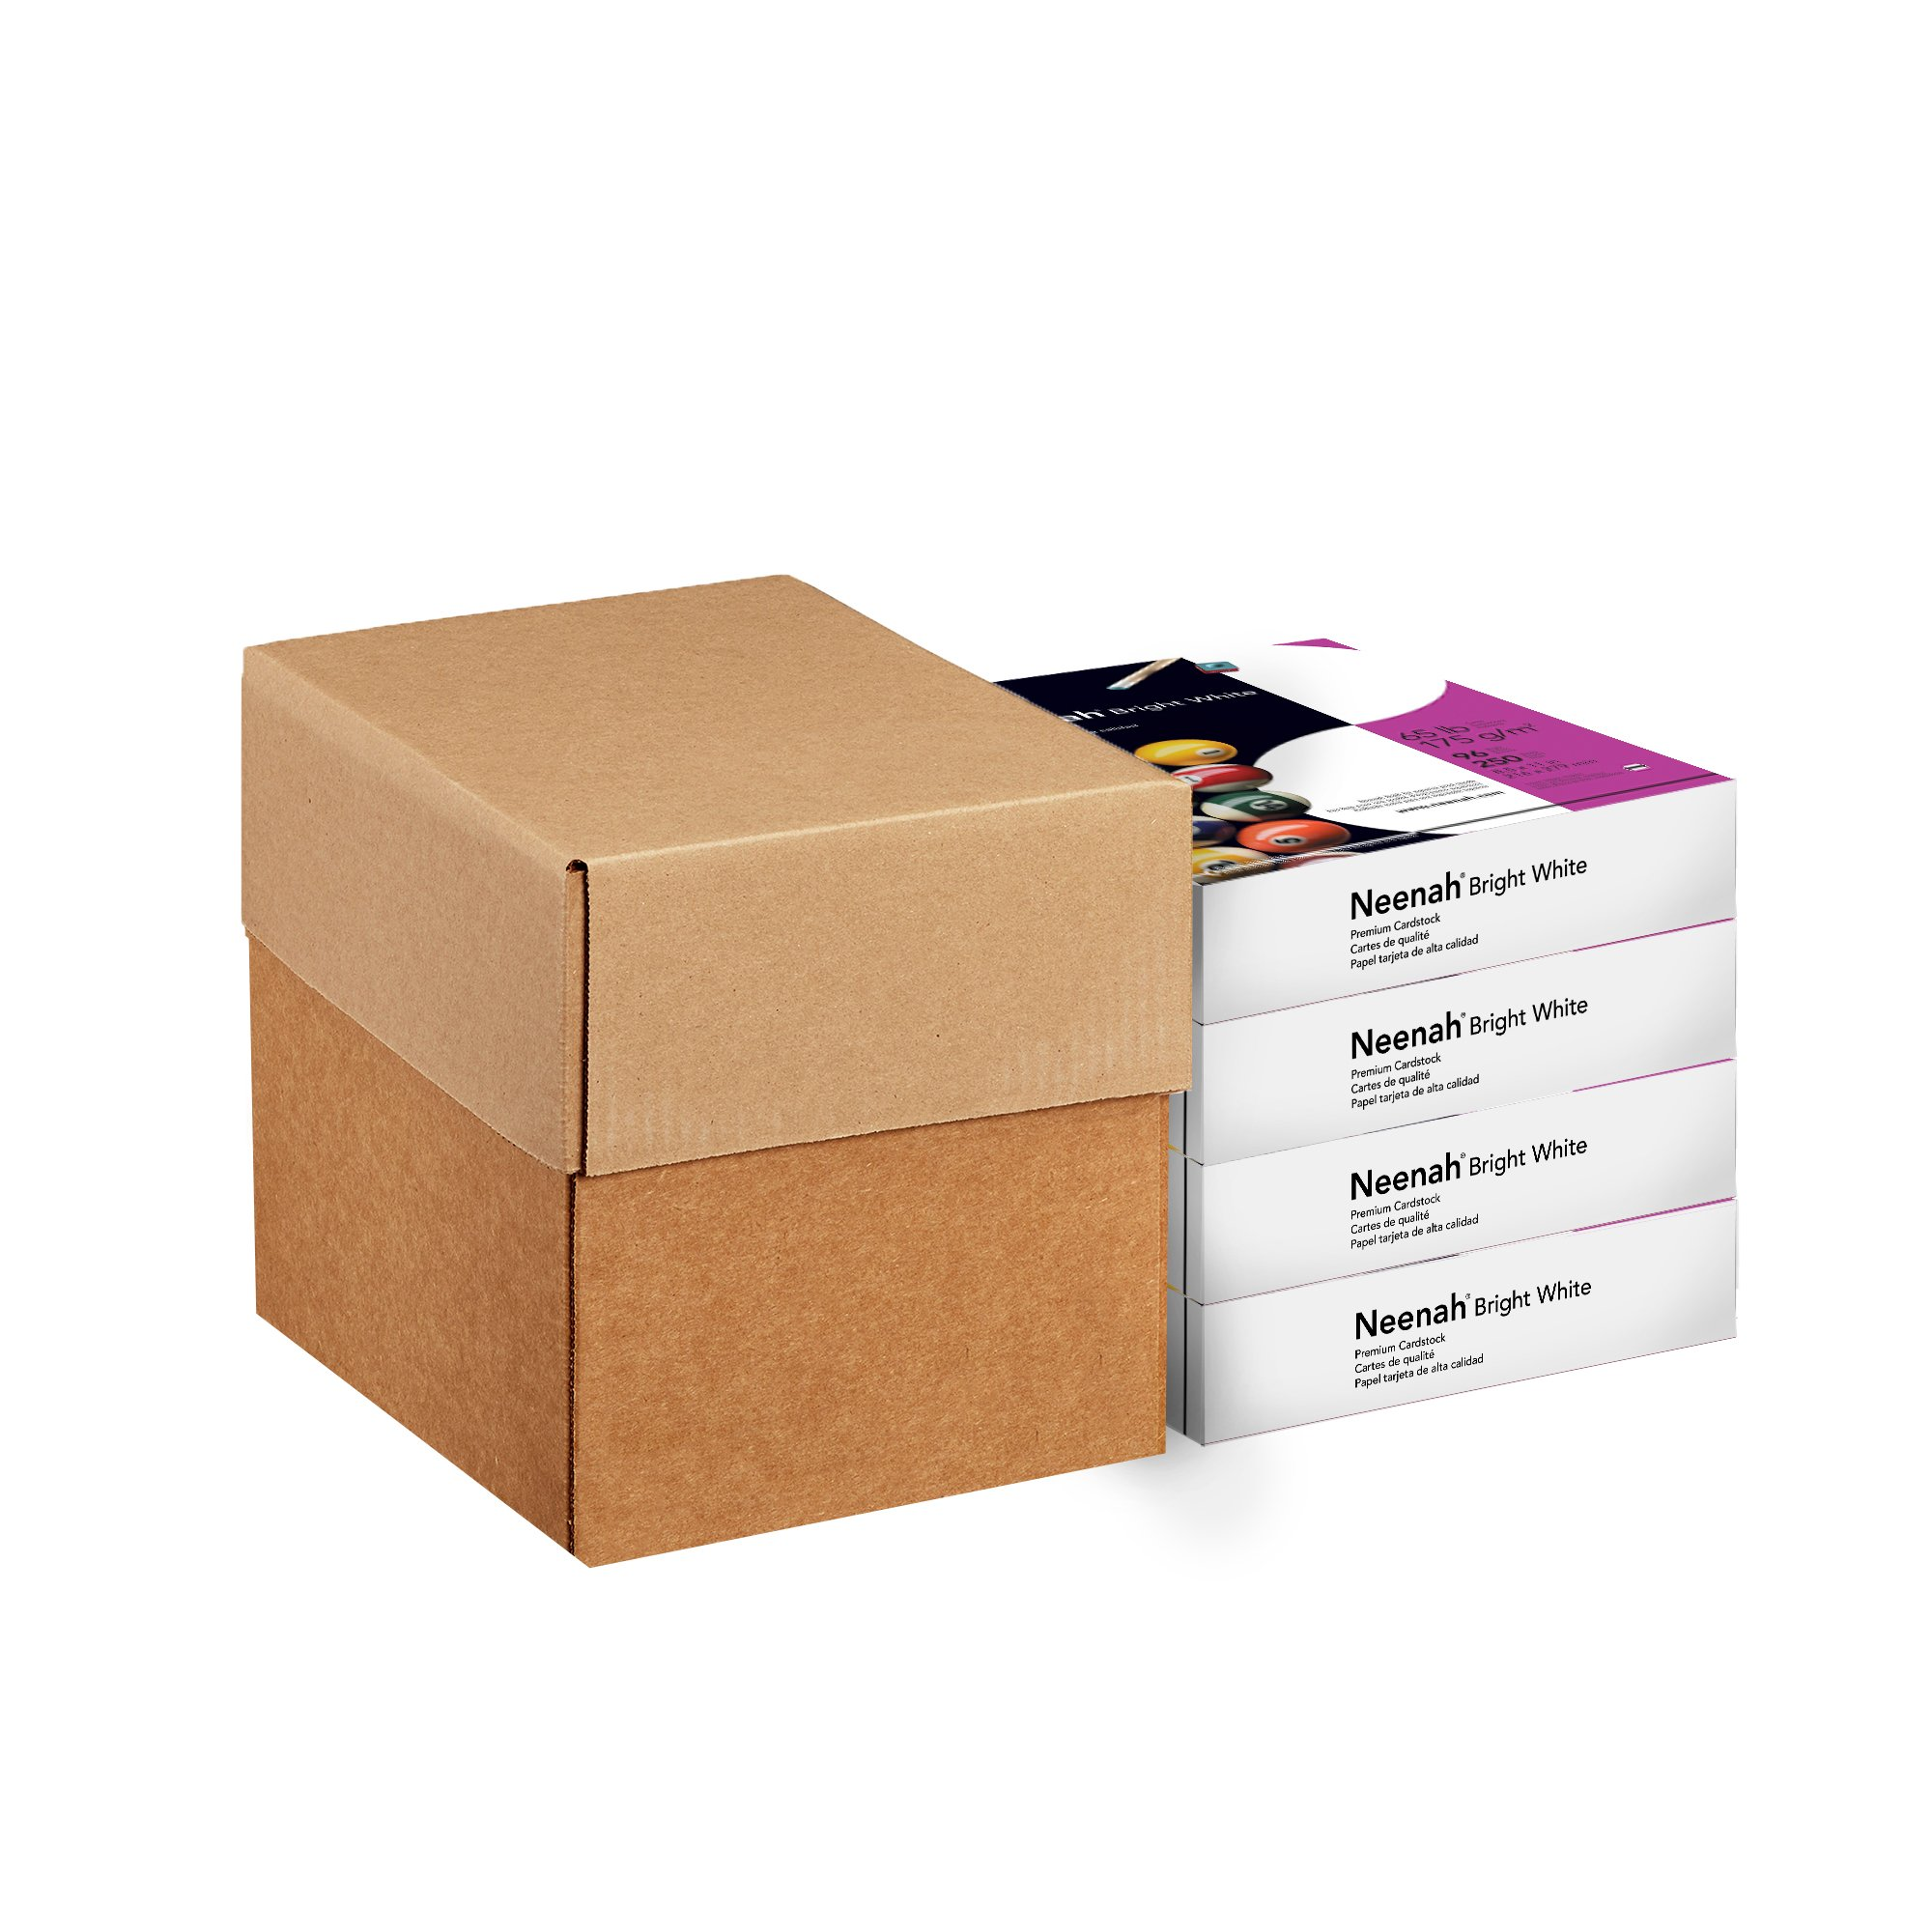 Neenah Paper Bright White Cardstock, 8.5'' x 11'', 65 lb/176 gsm, Bright White, 96 Brightness, 1000 Sheets, 4 Pack (91904)